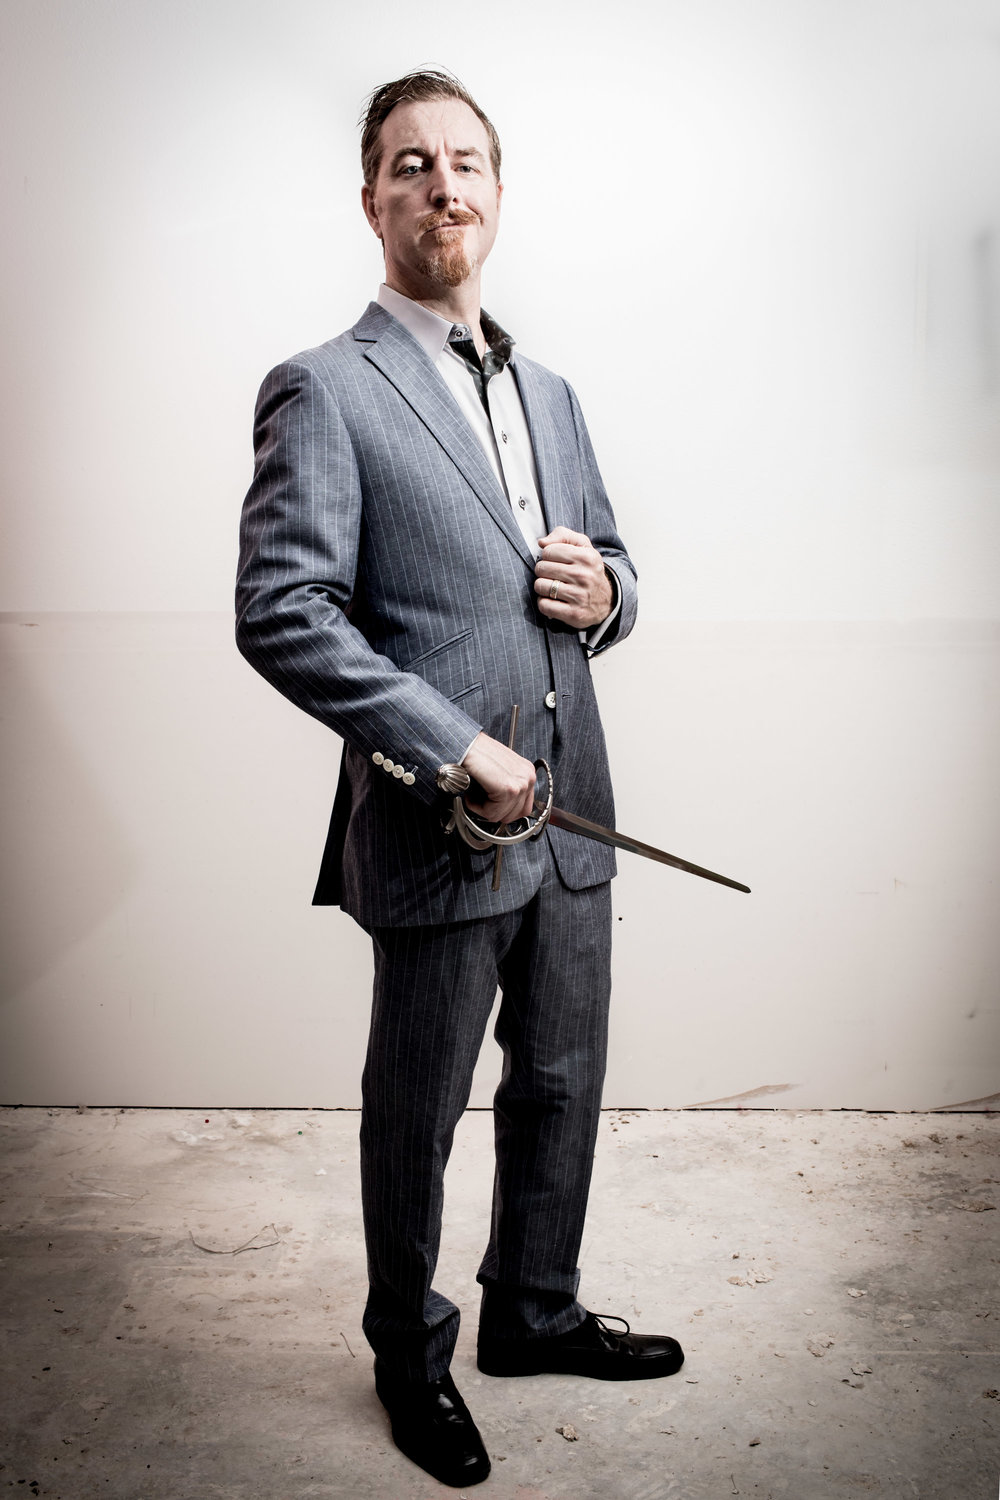 Suit and Sword portrait Houston